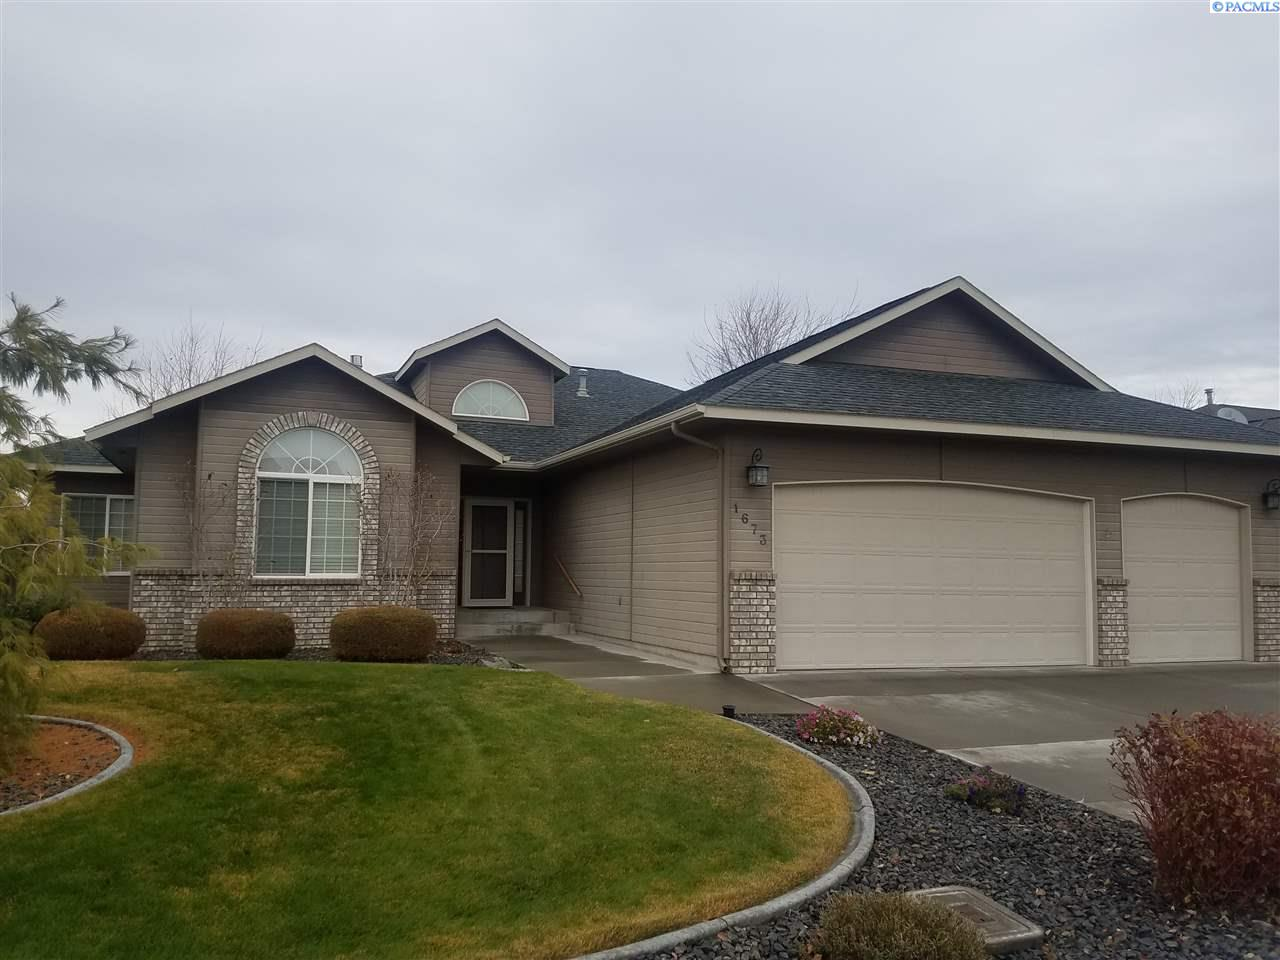 Single Family Home for Sale at 1673 VENUS CIRCLE 1673 VENUS CIRCLE Richland, Washington 99352 United States